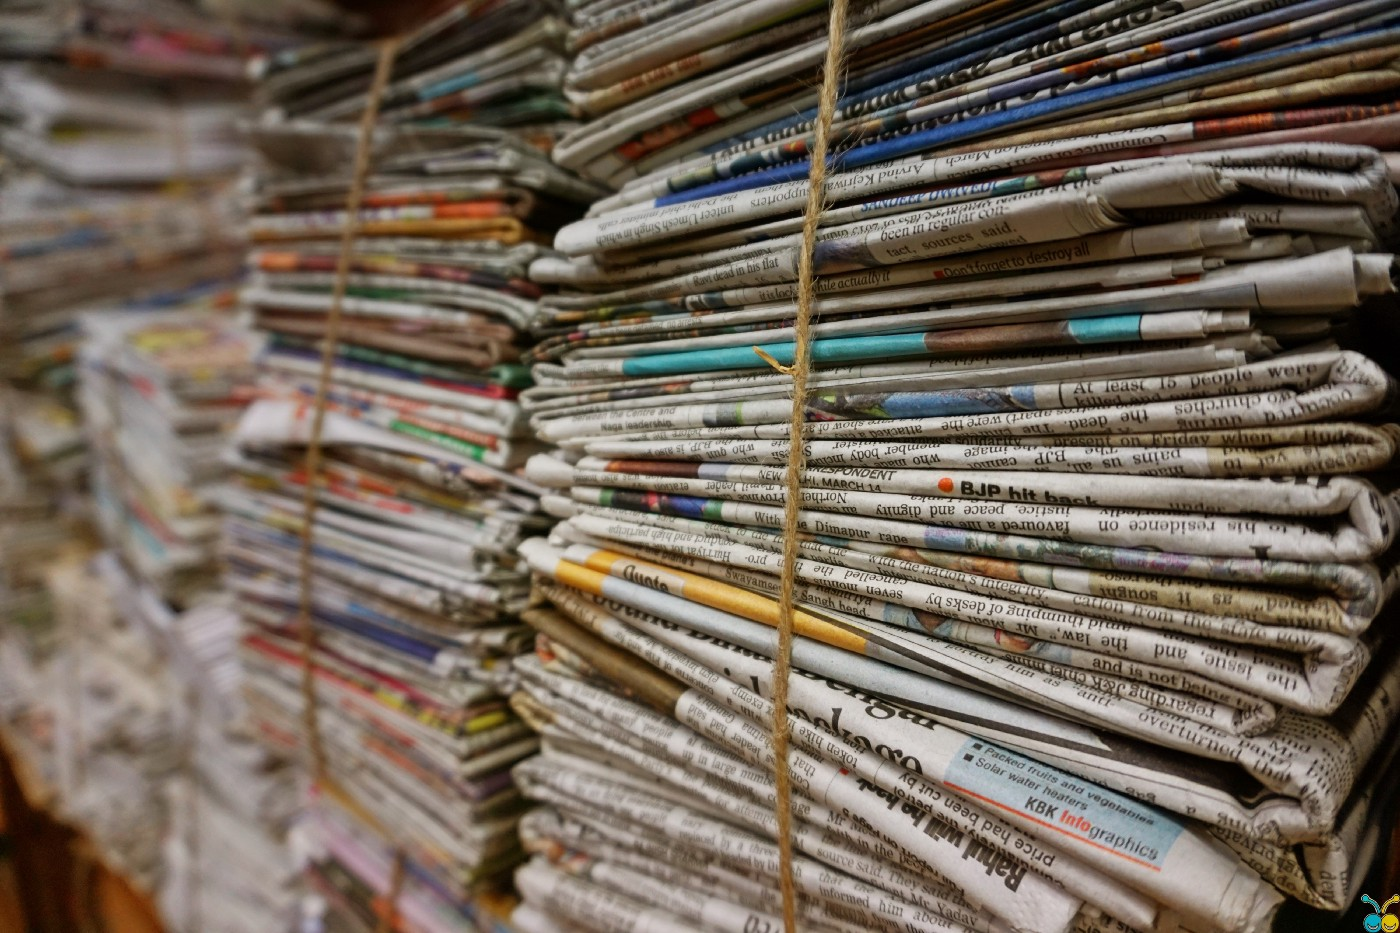 stacks of newspapers folded and bound with twine